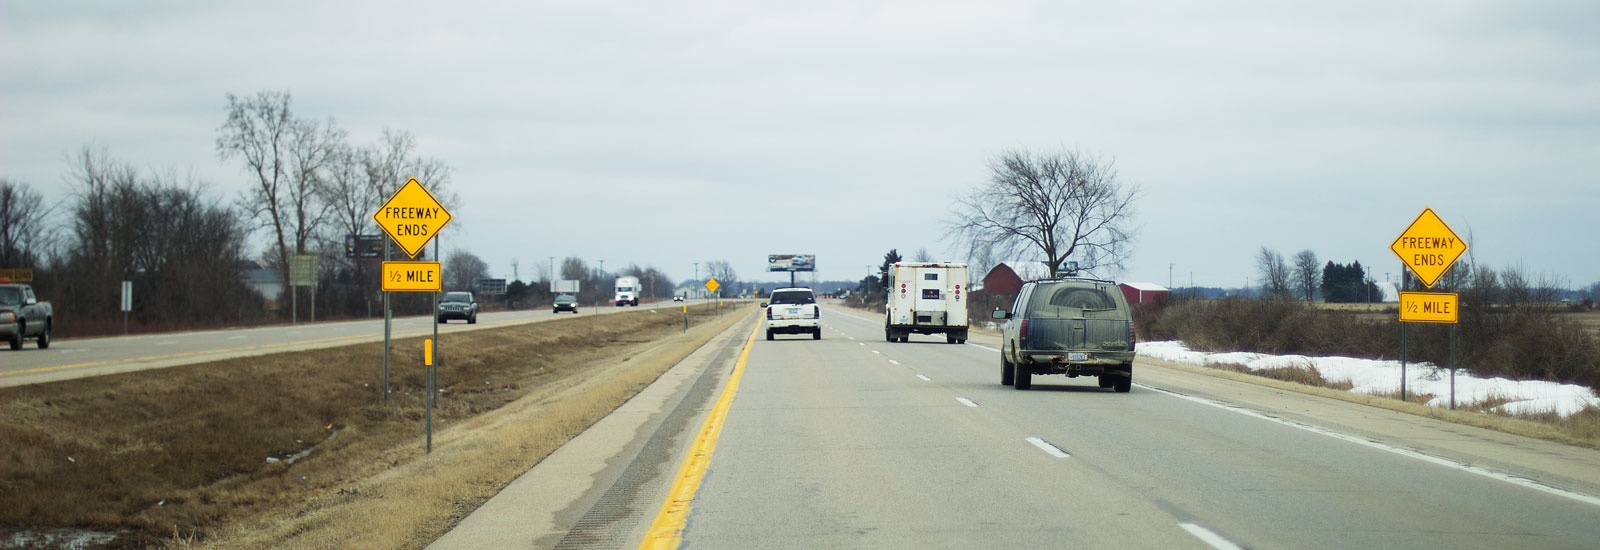 Signs warn motorists that the limited-access freeway ends in 1/2 mile on Southbound US-127 near Ithaca, MI